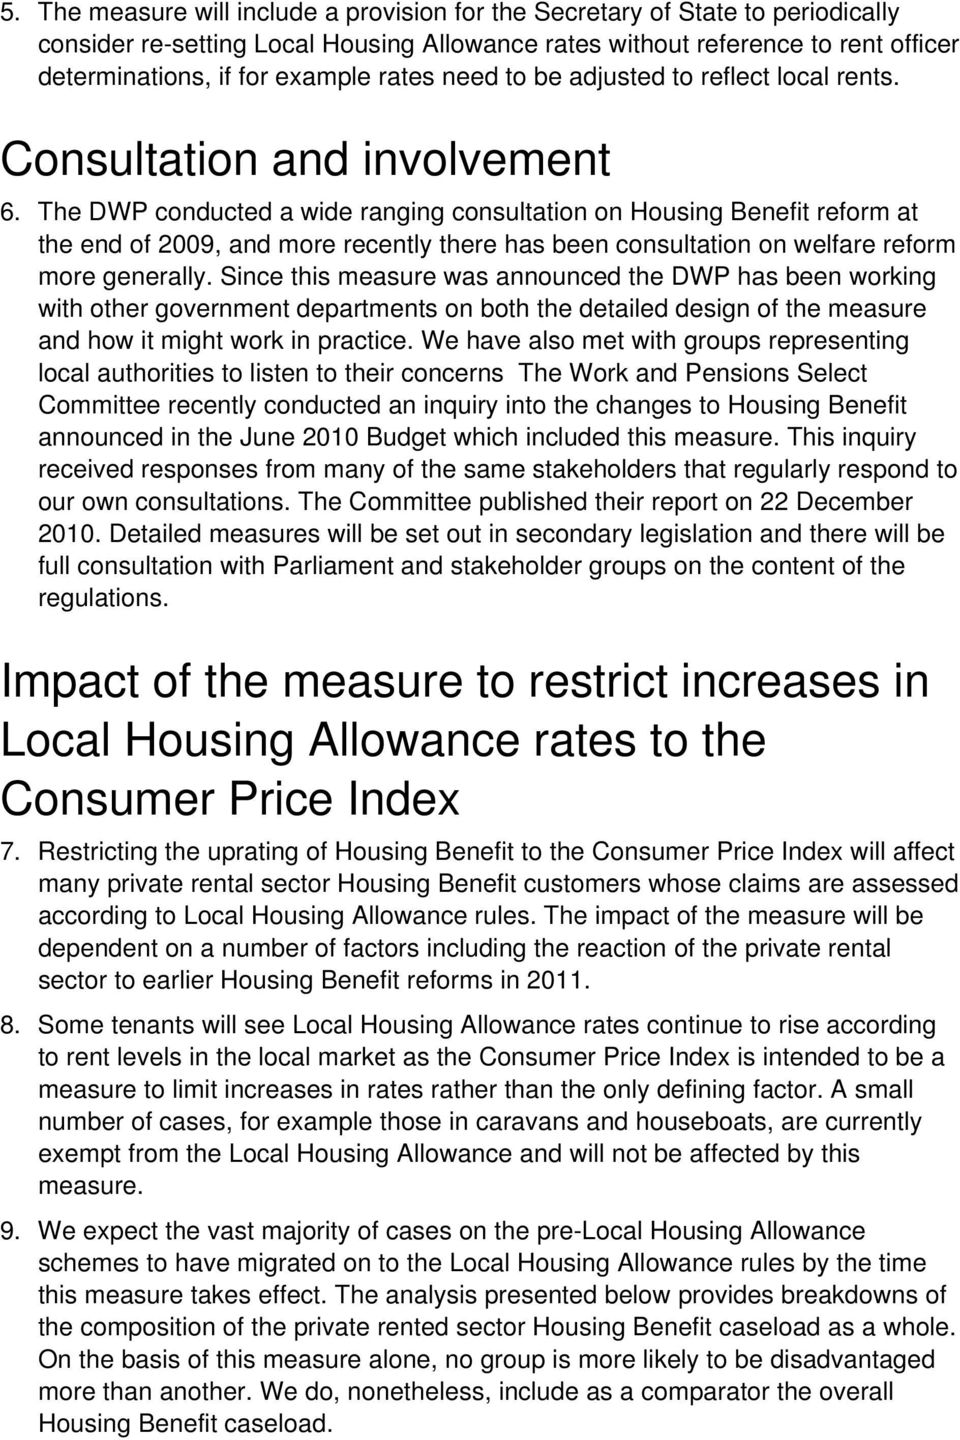 The DWP conducted a wide ranging consultation on Housing Benefit reform at the end of 2009, and more recently there has been consultation on welfare reform more generally.